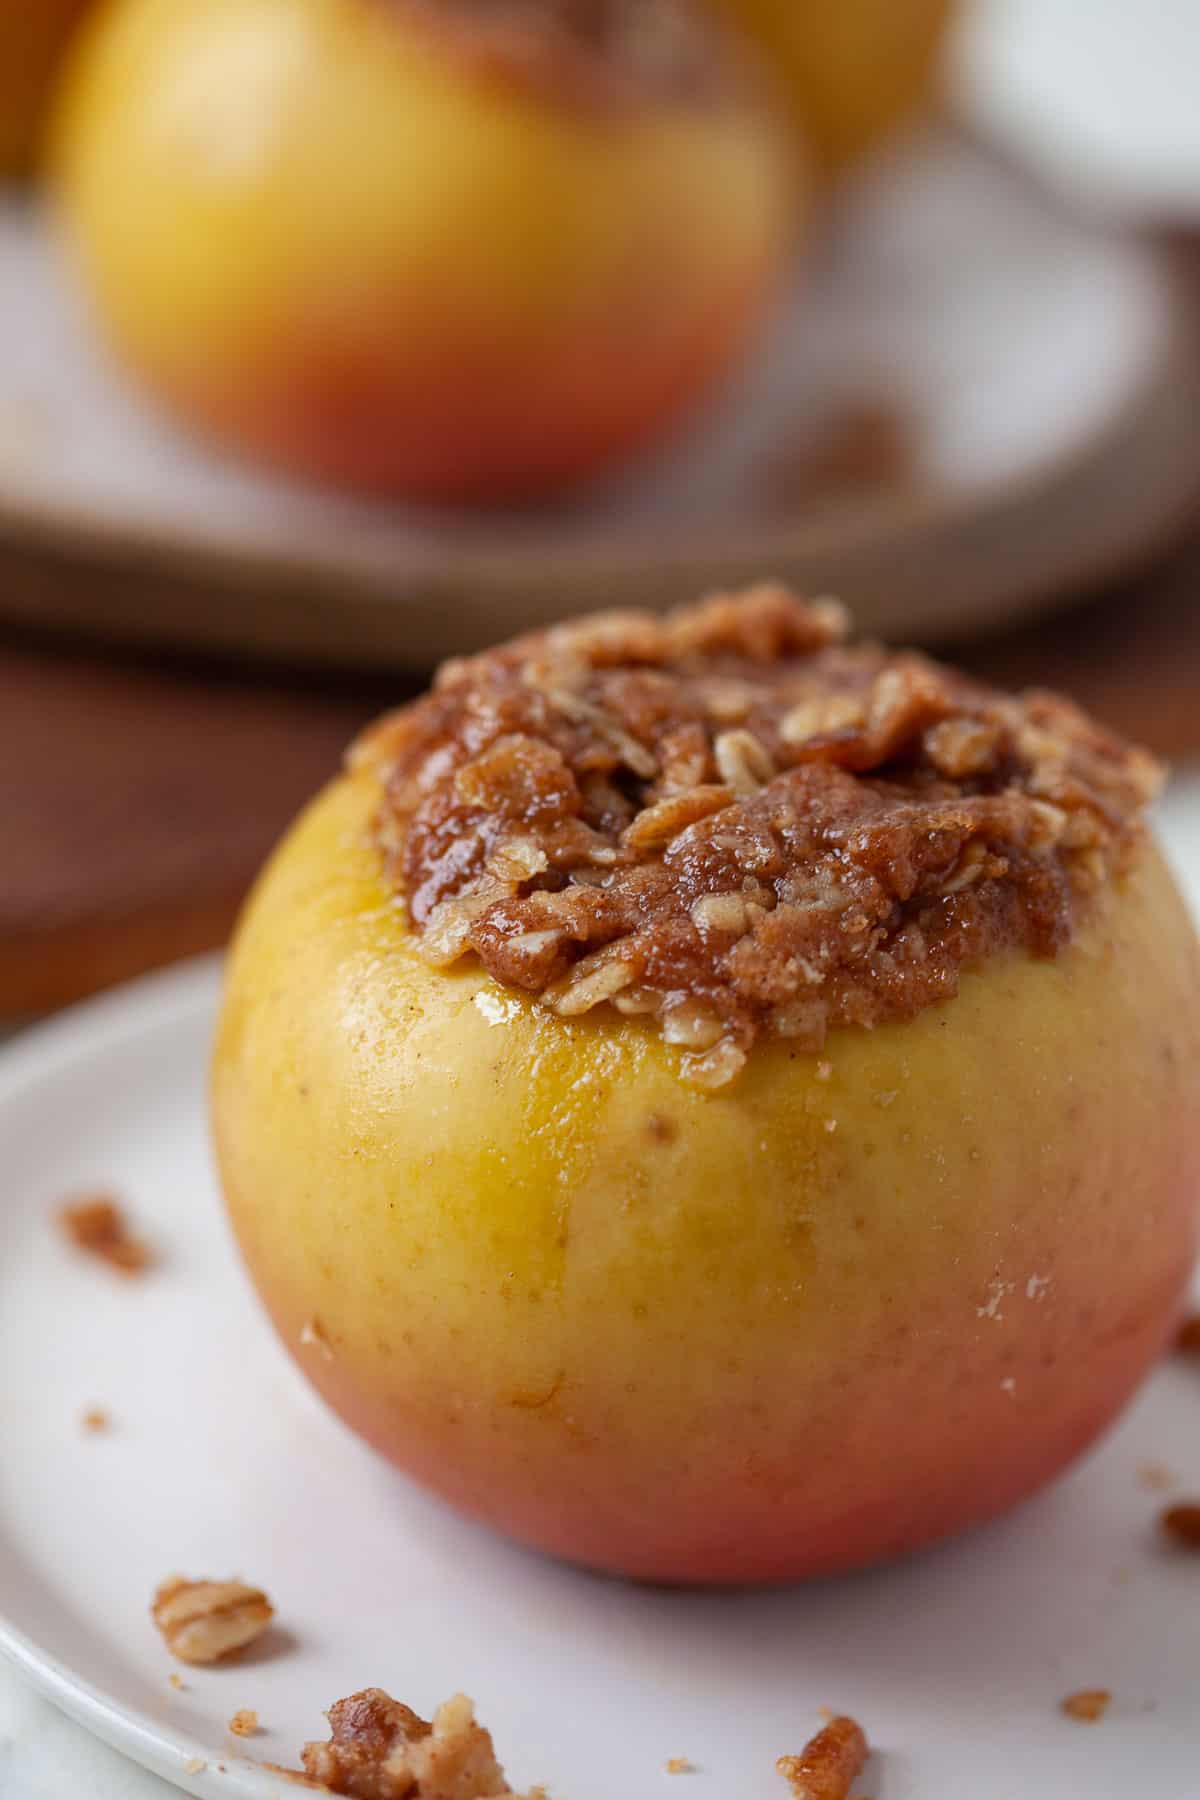 baked apple with oat and cinnamon mixture in the center